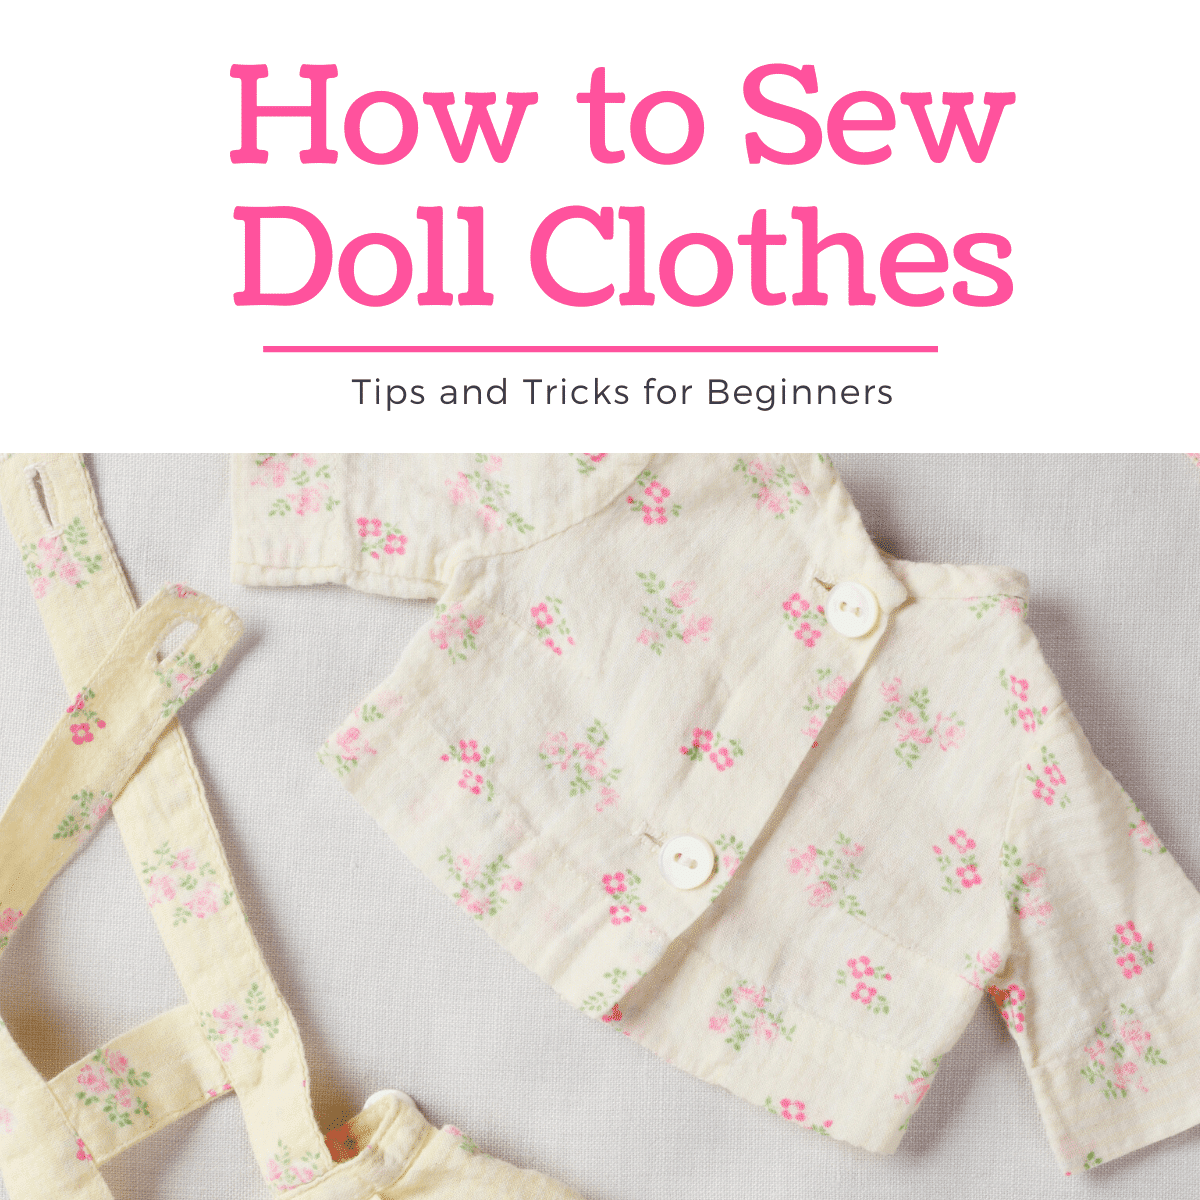 How to Sew Doll Clothes for Beginners (Tips & Tricks)